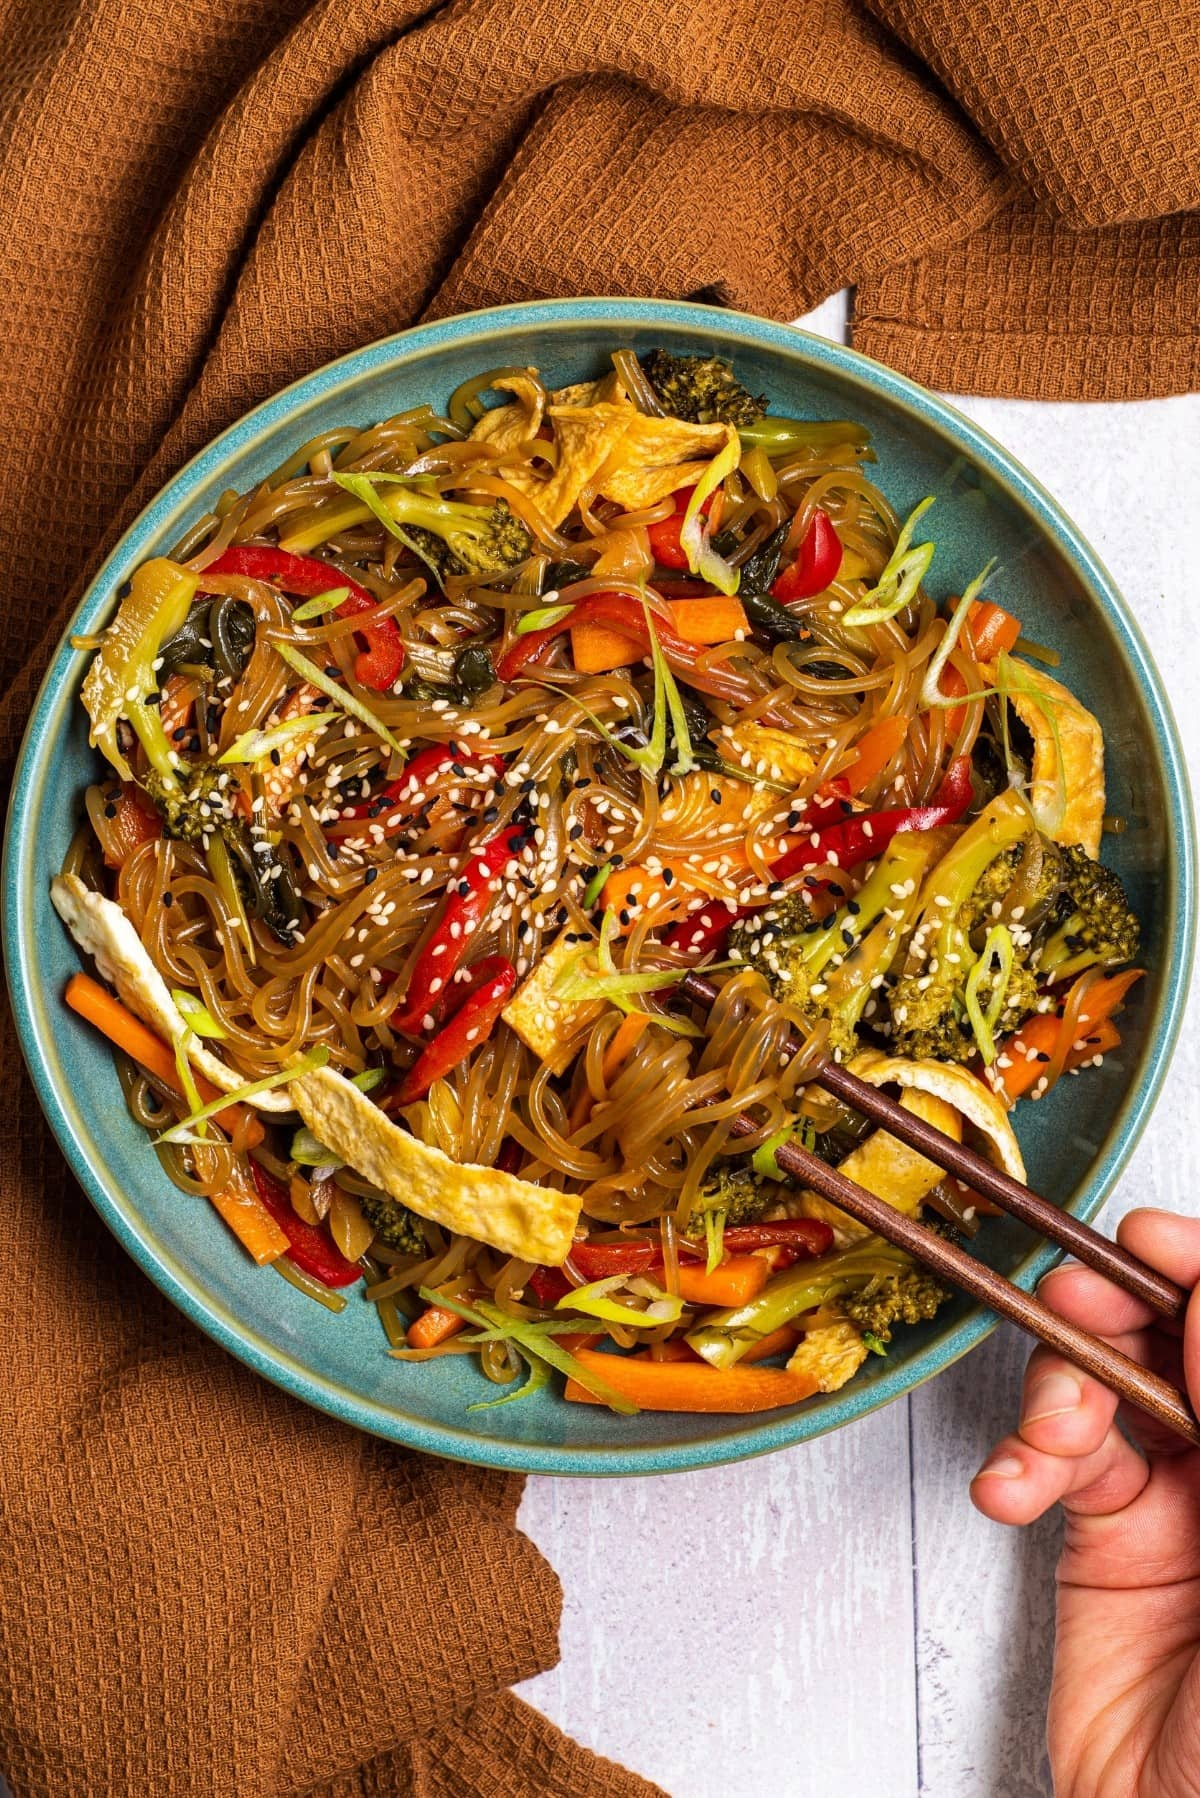 Paleo and gluten free japchae noodle recipe with vegetables.